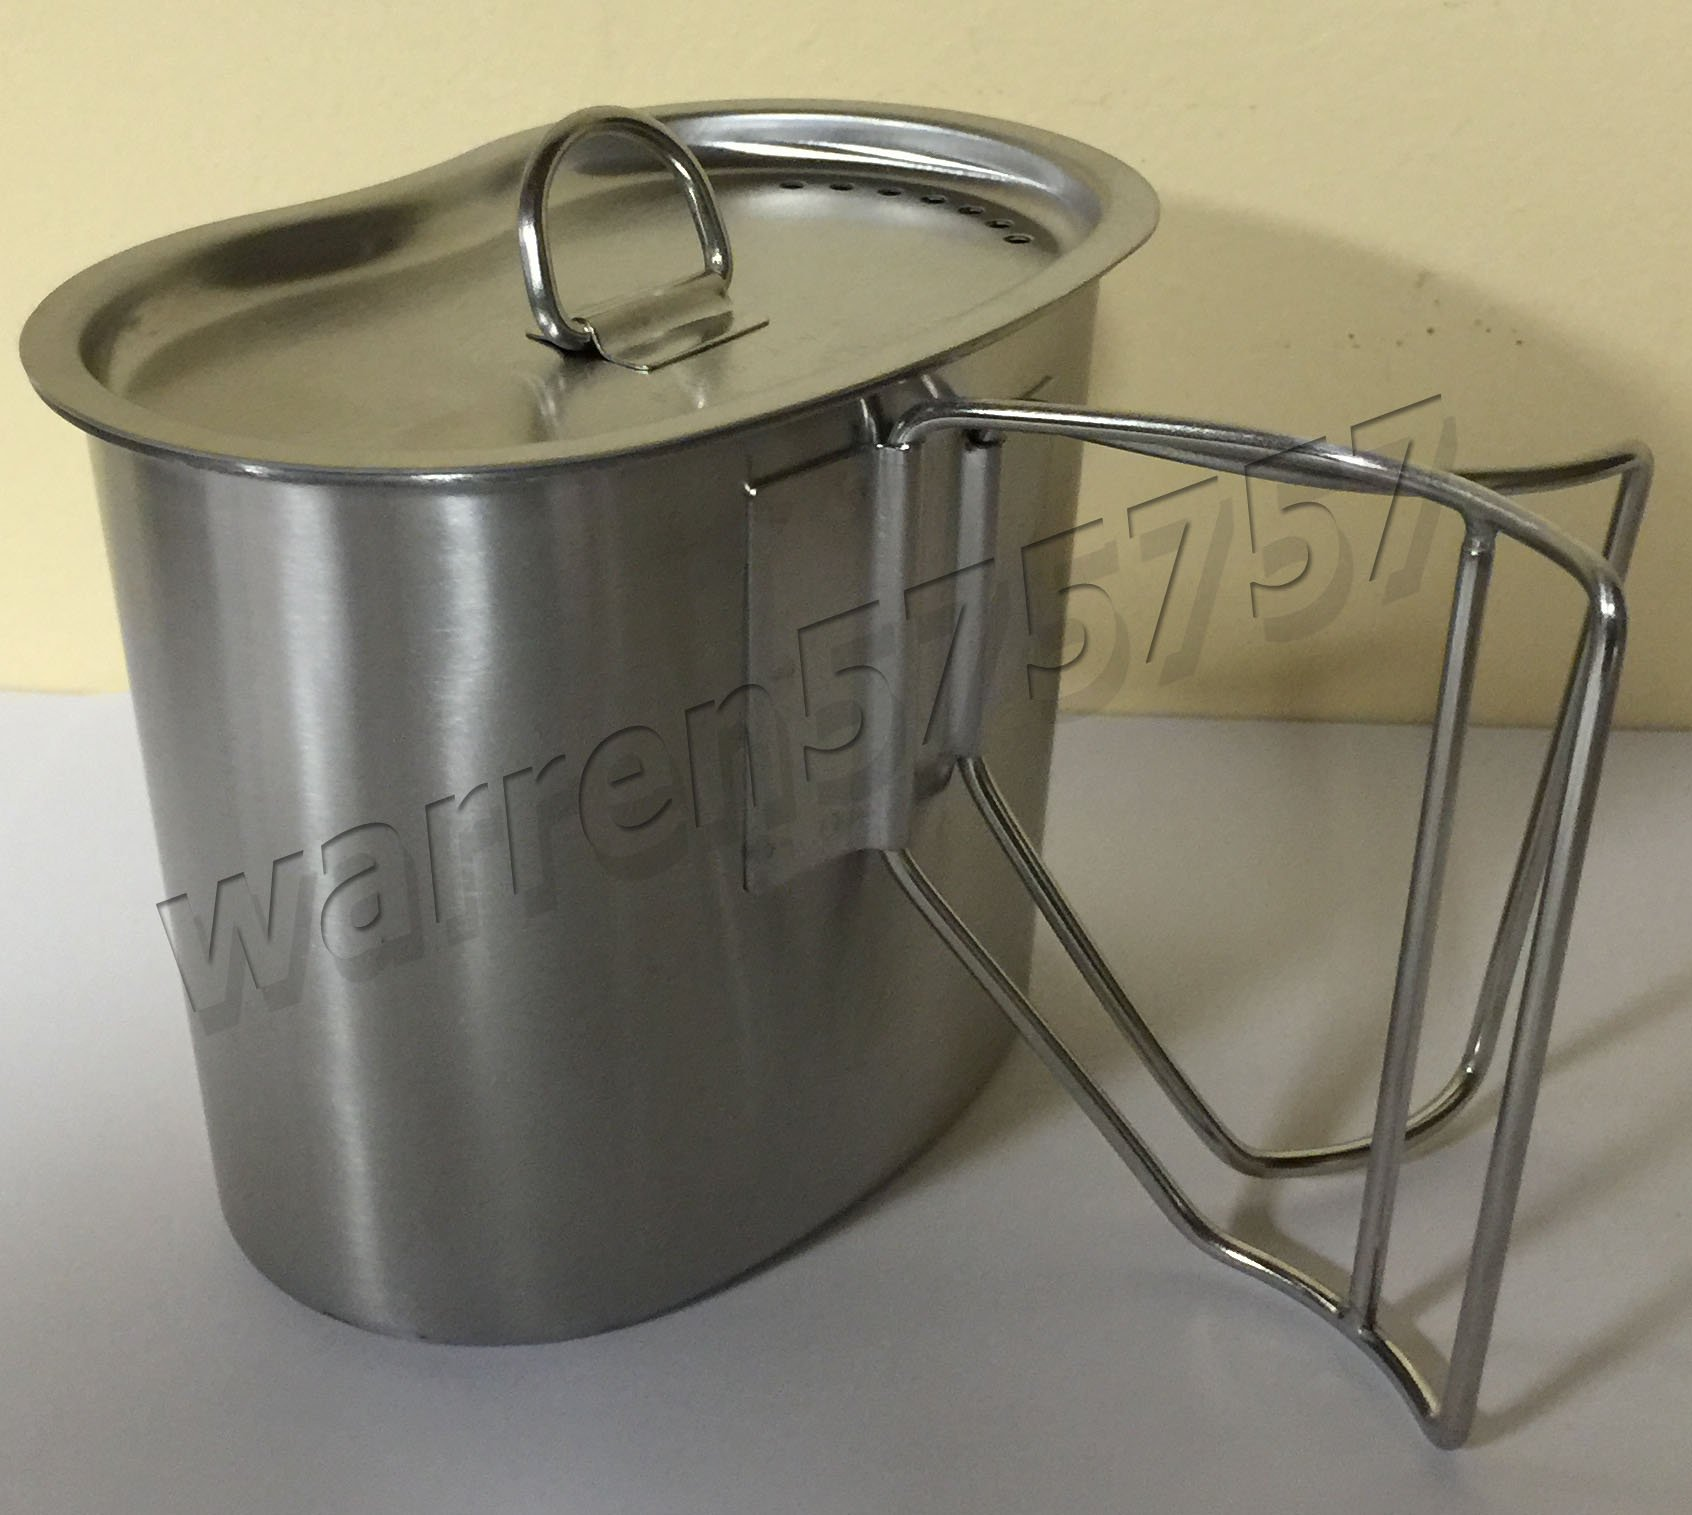 New Military Style 1 qt Desert CAMO Issue Canteen Cover. G.A.K Stainless Steel Canteen with Cup and New Surplus G.I